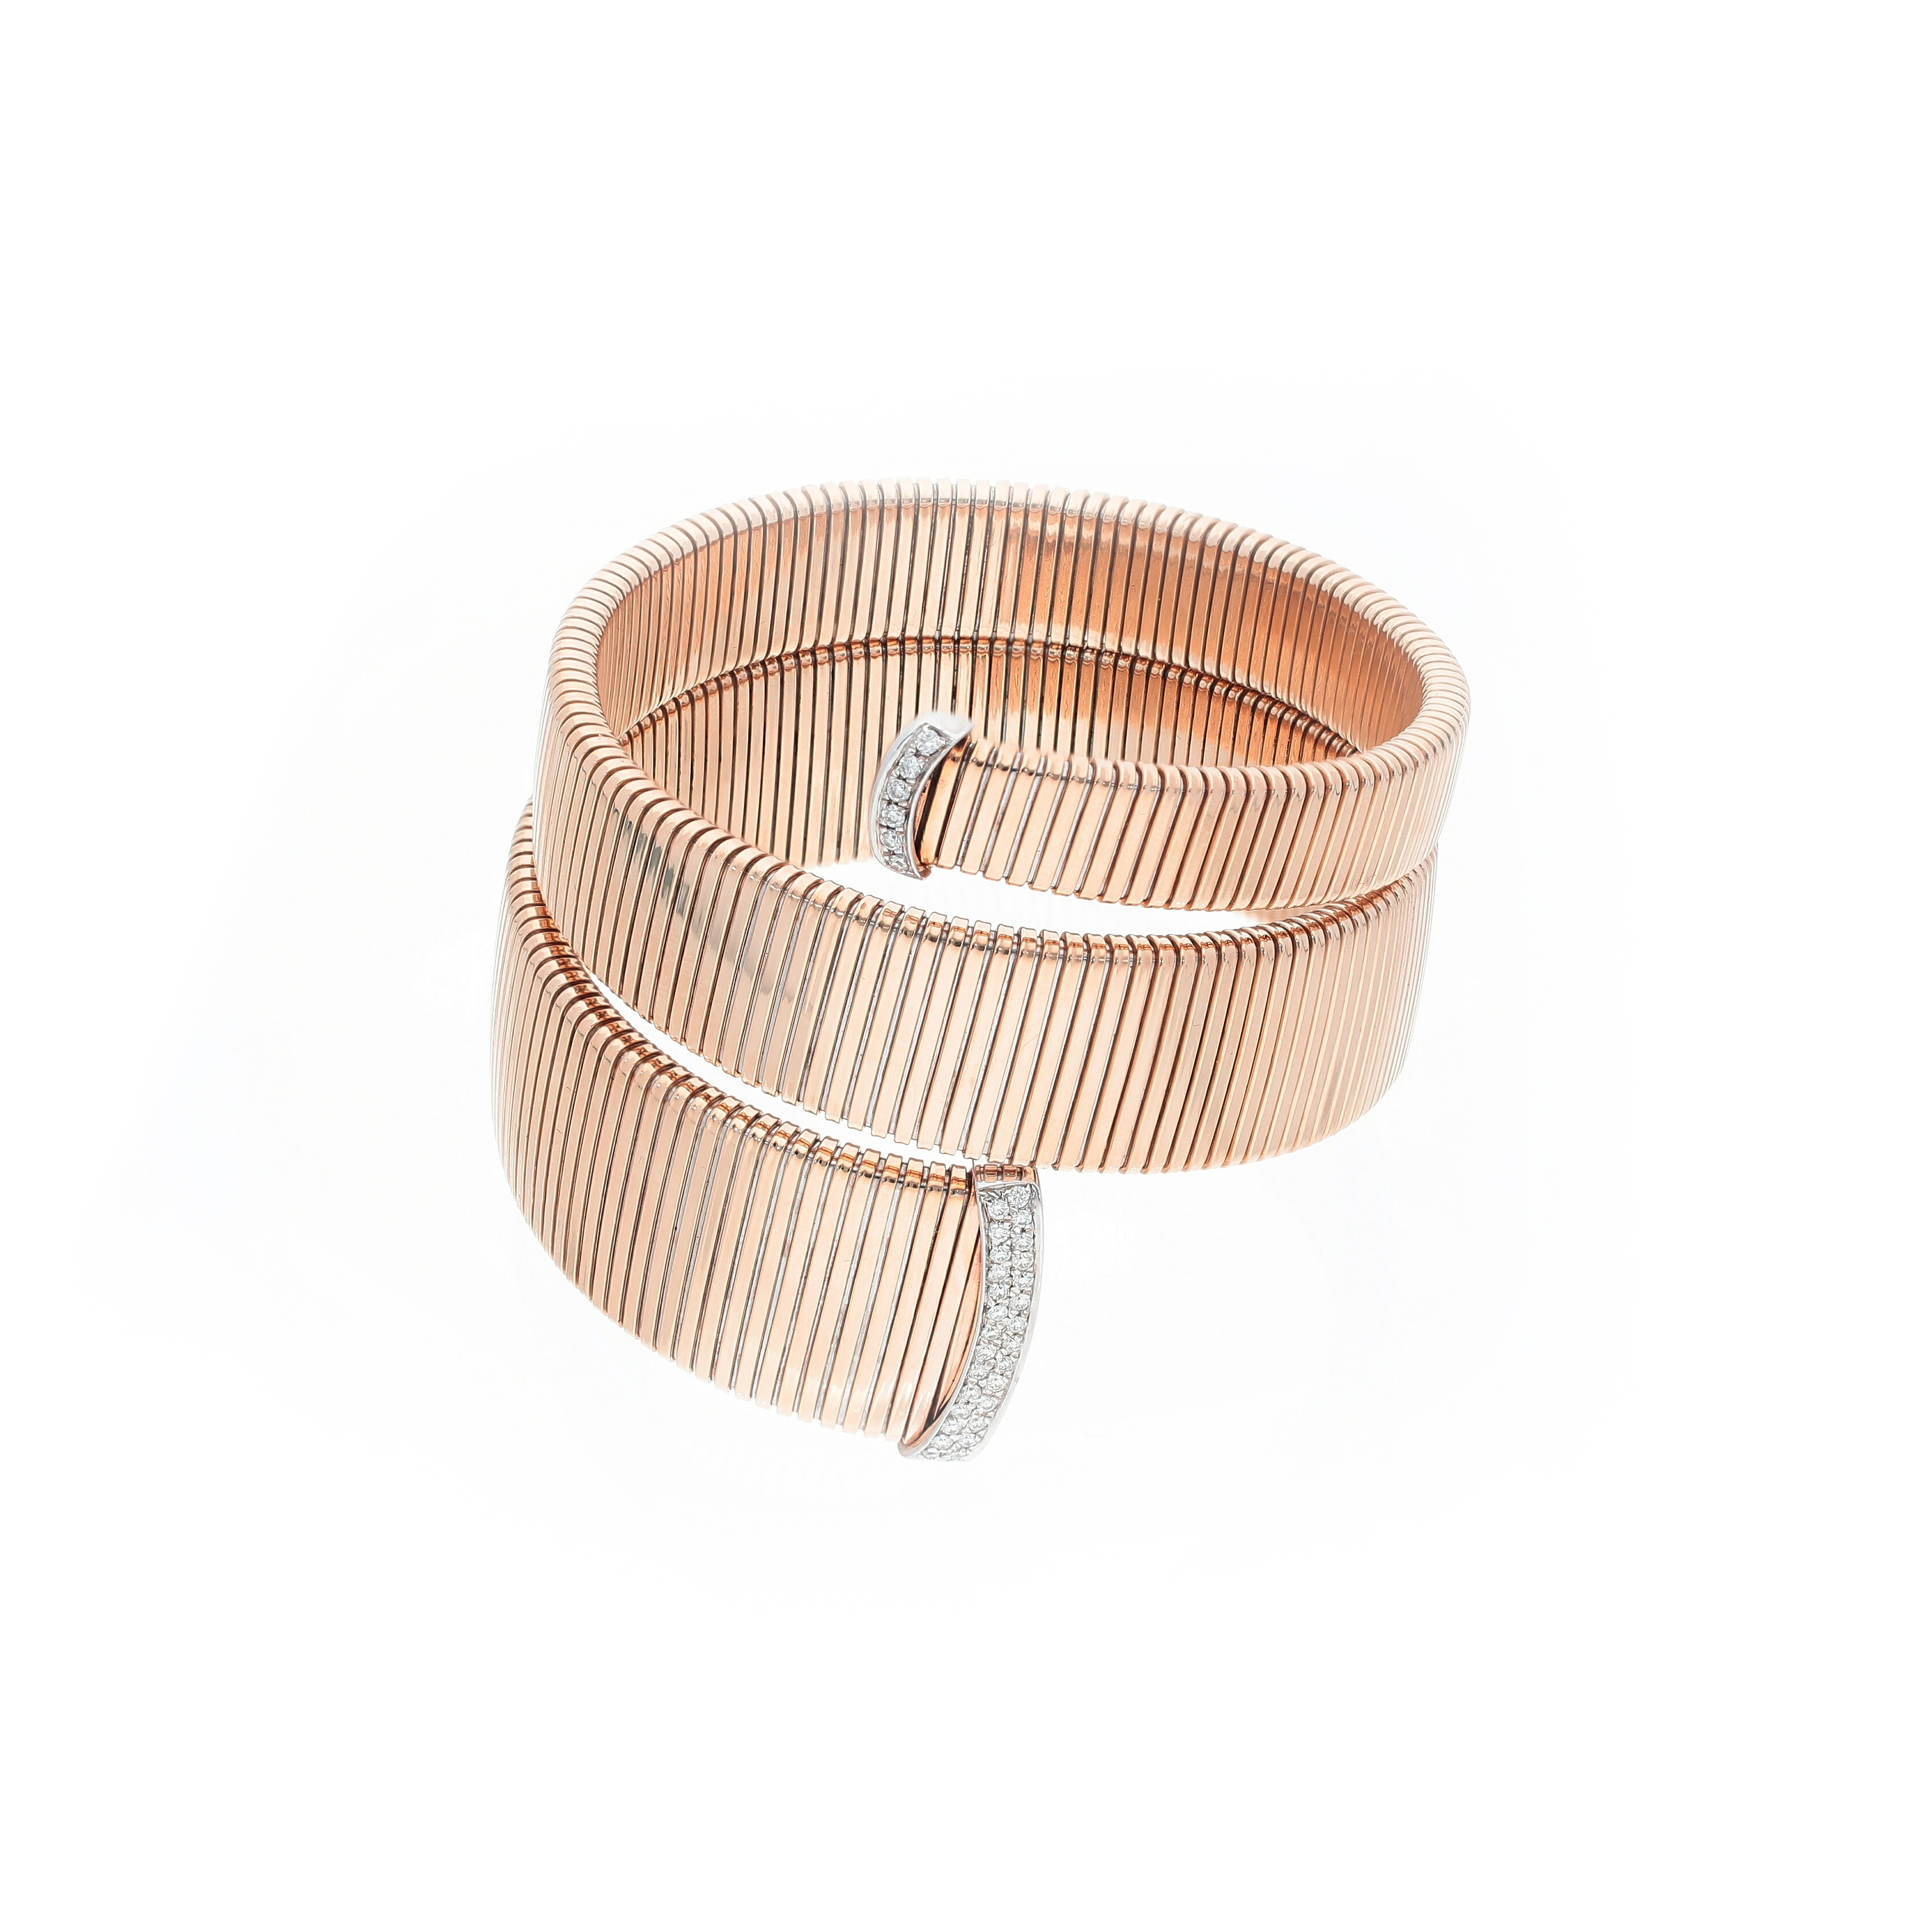 Modern Gas tube Bracelet in 18kt rose and white gold with diamonds